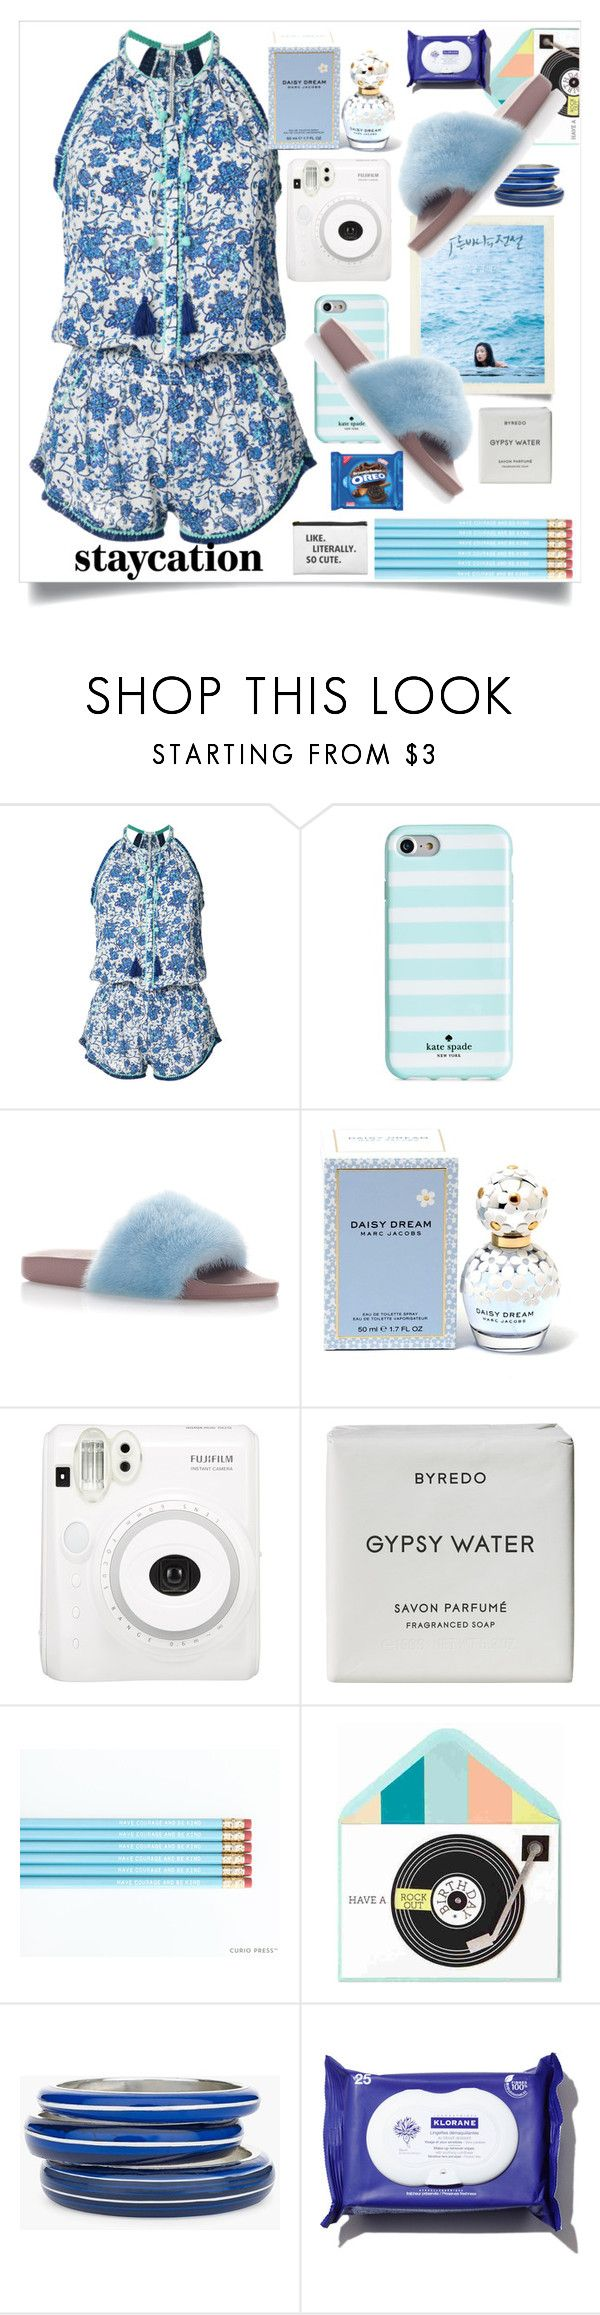 """""""Staycation"""" by wuteringheights ❤ liked on Polyvore featuring Poupette St Barth, Kate Spade, Dolce&Gabbana, Marc Jacobs, Byredo and Chico's"""